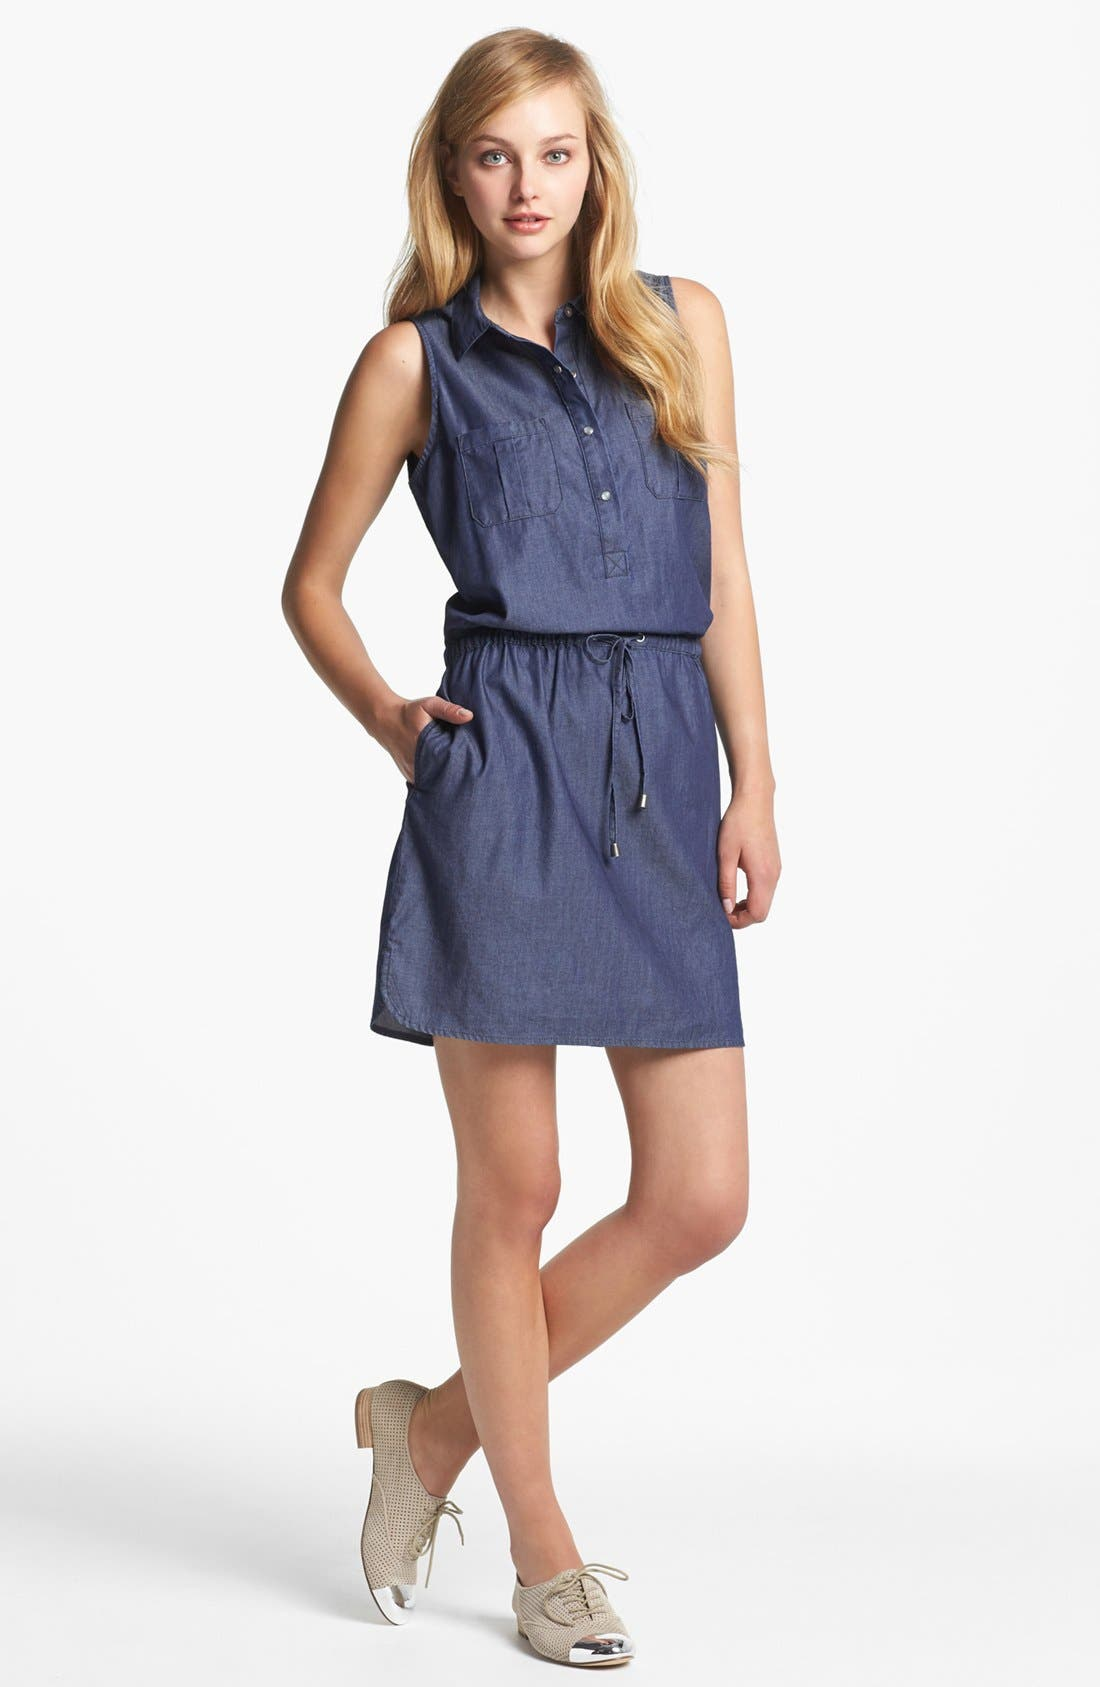 Alternate Image 1 Selected - Two by Vince Camuto Sleeveless Chambray Shirtdress